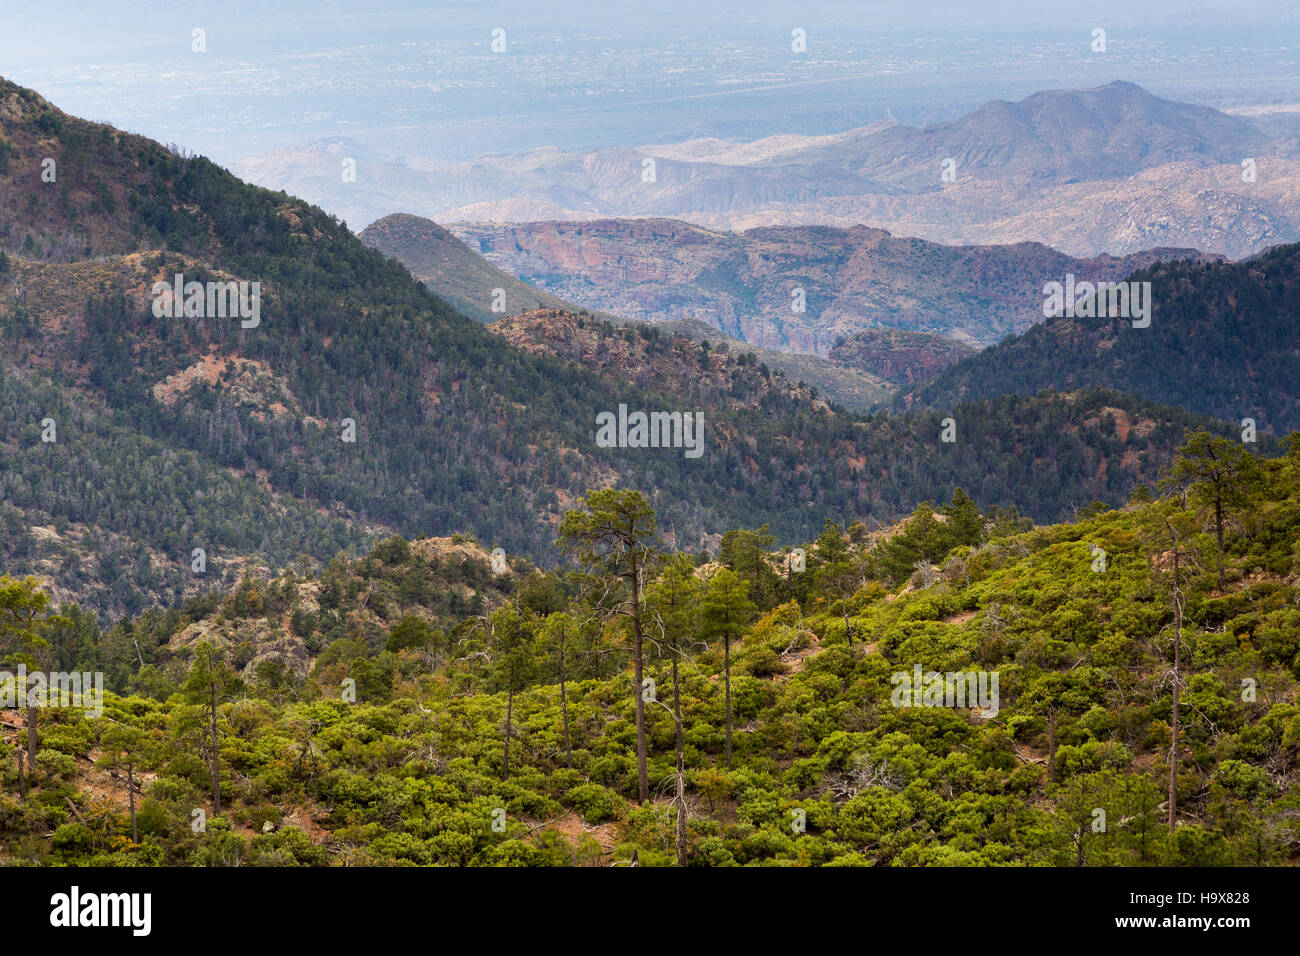 Urban sprawl from Cave Creek visible below ponderosa pine trees deep in the Mazatzal Mountains. Mazatzal Wilderness, - Stock Image